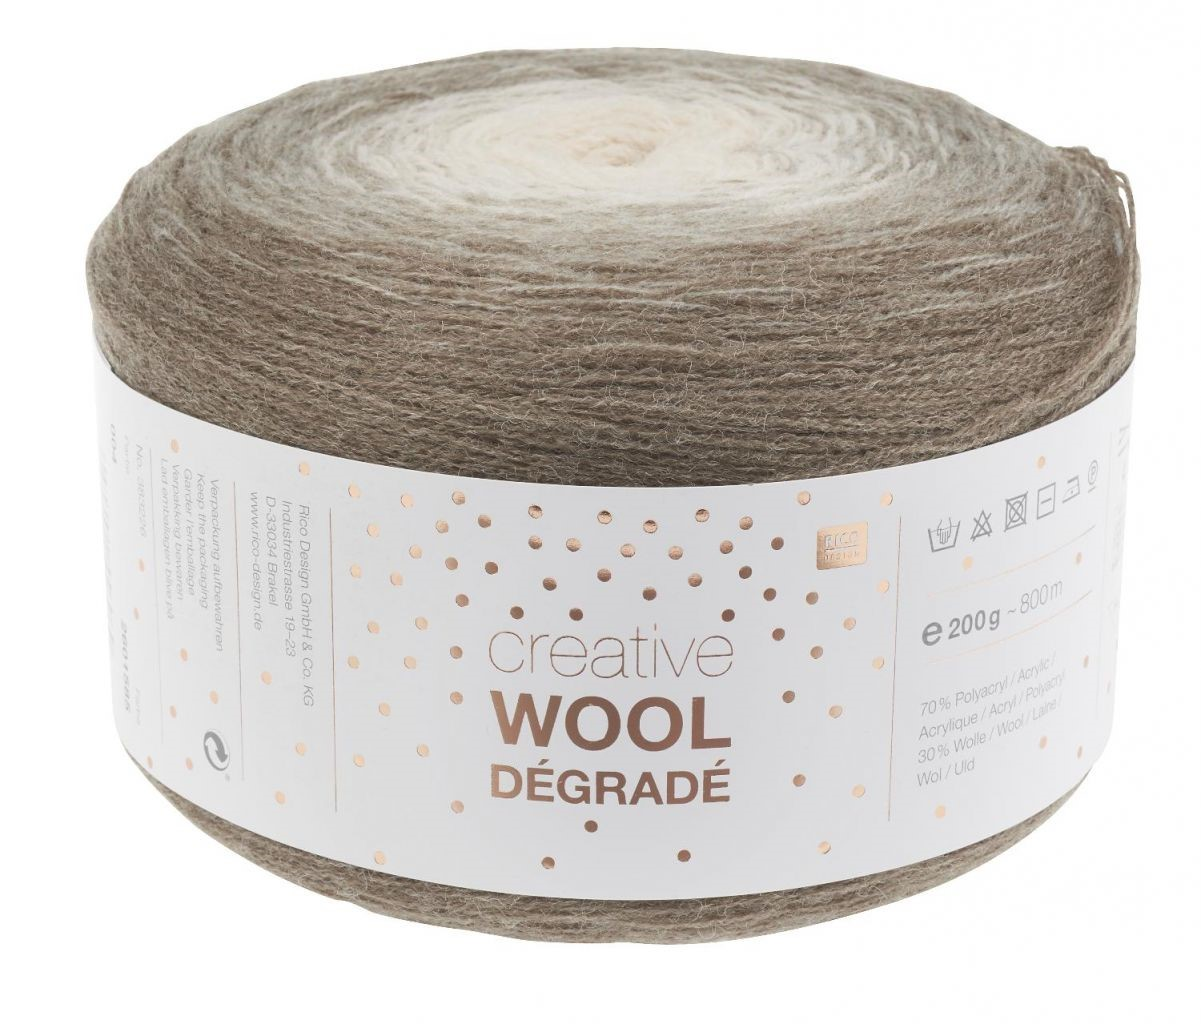 4 Creative wool degrade rico.jpg